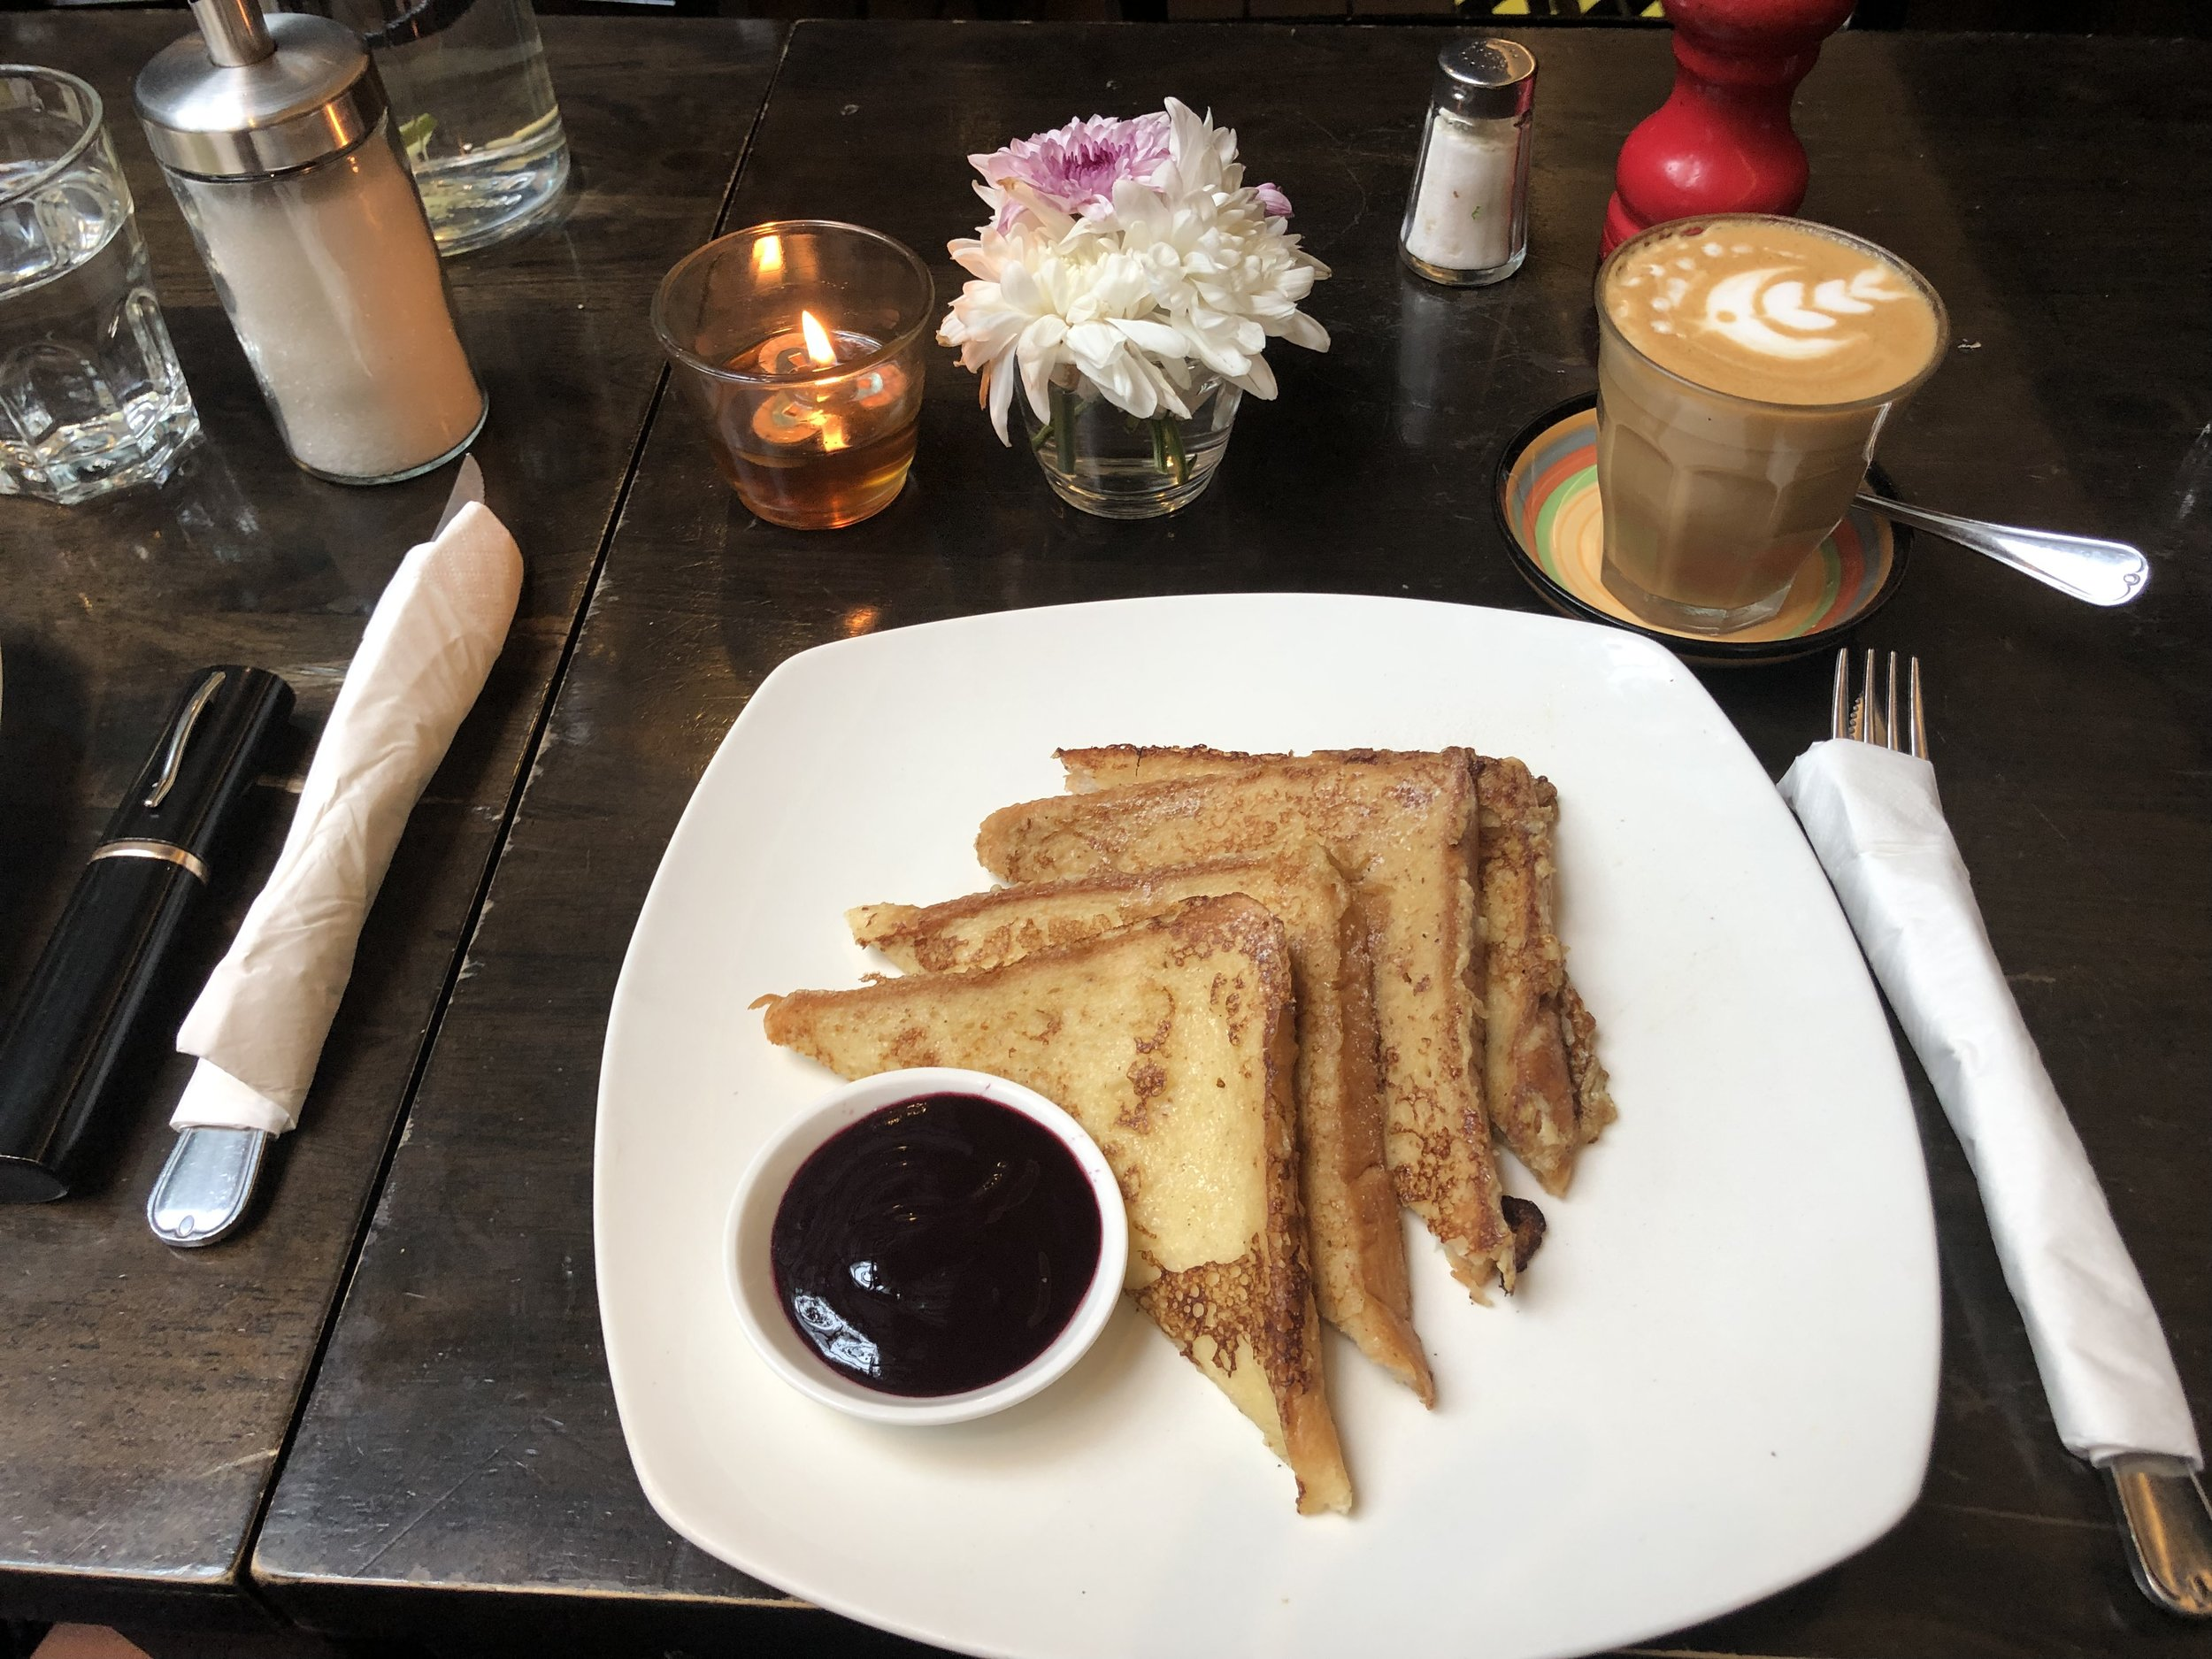 French Toast with a mini fruit compote & mascarpone on the way along with clever coffee art ...